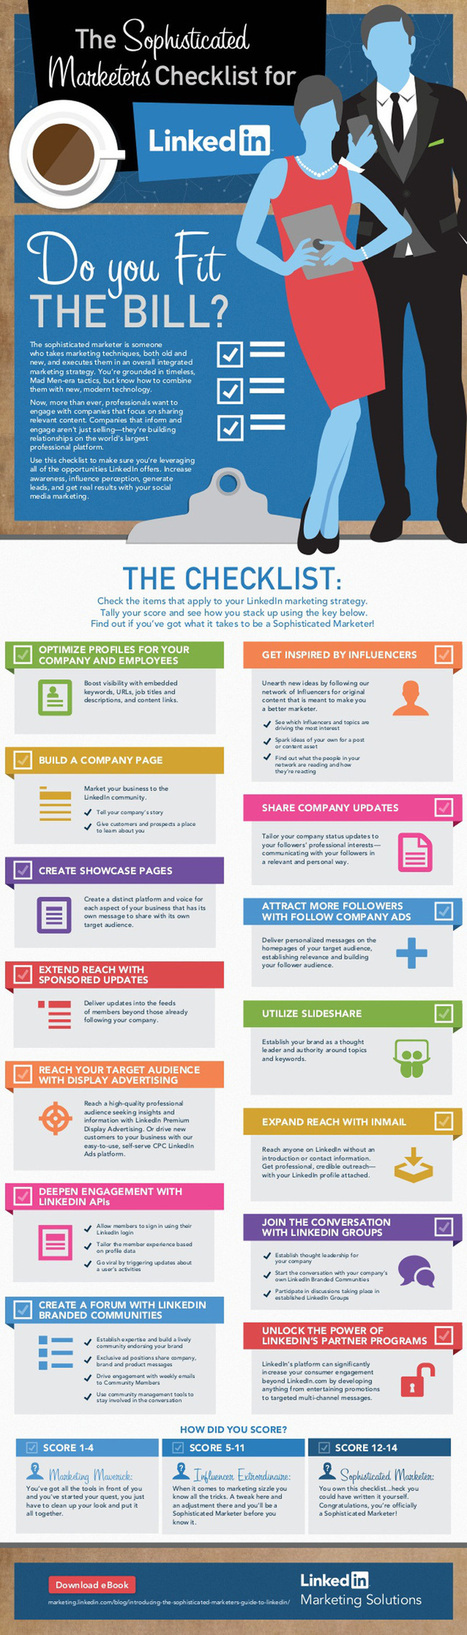 The Sophisticated Marketer's Guide to LinkedIn, an infographic | Entrepreneurship | Scoop.it